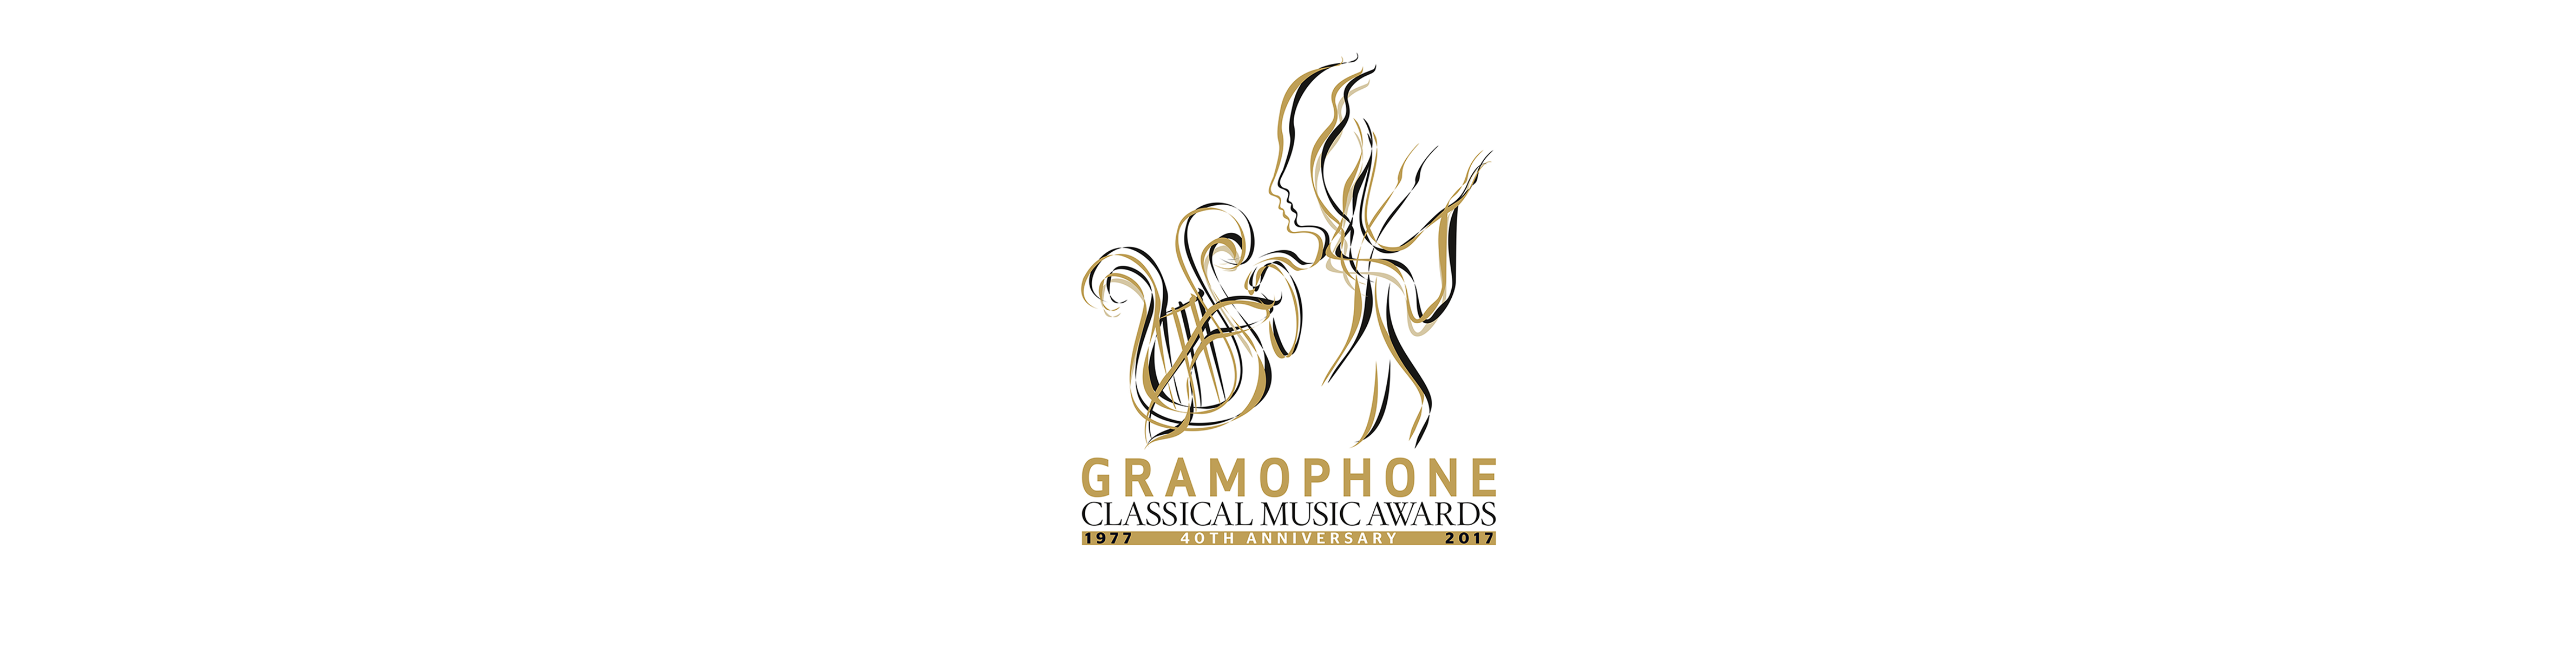 Gramophone Classical Music Awards 2017